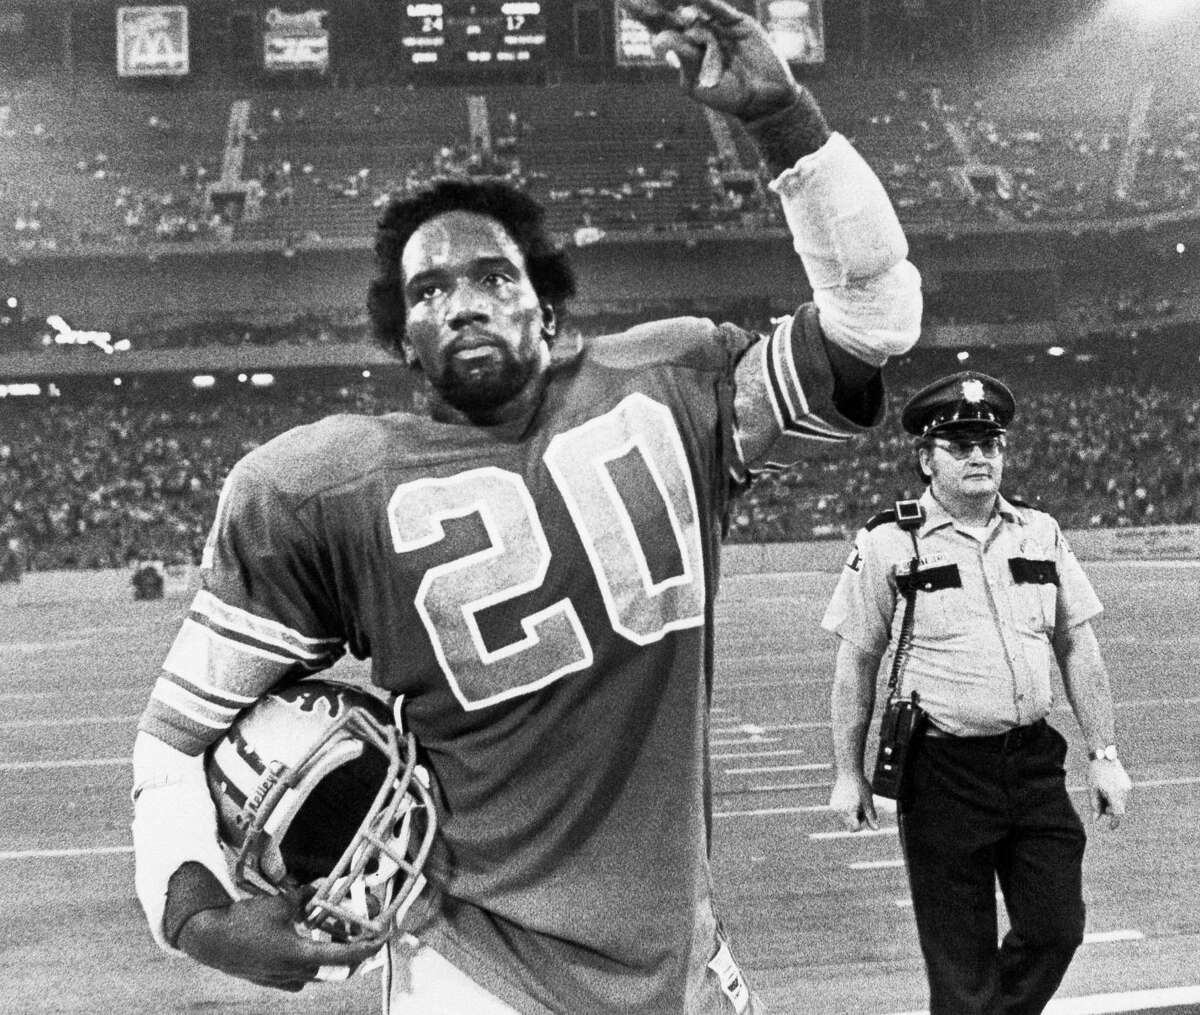 Detroit running back Billy Sims waves to fans after the Lions' 24-17 defeat of the 49ers in Week 1 of the 1981 season. Sims scored two touchdowns, including the game-winner with 18 seconds to play.